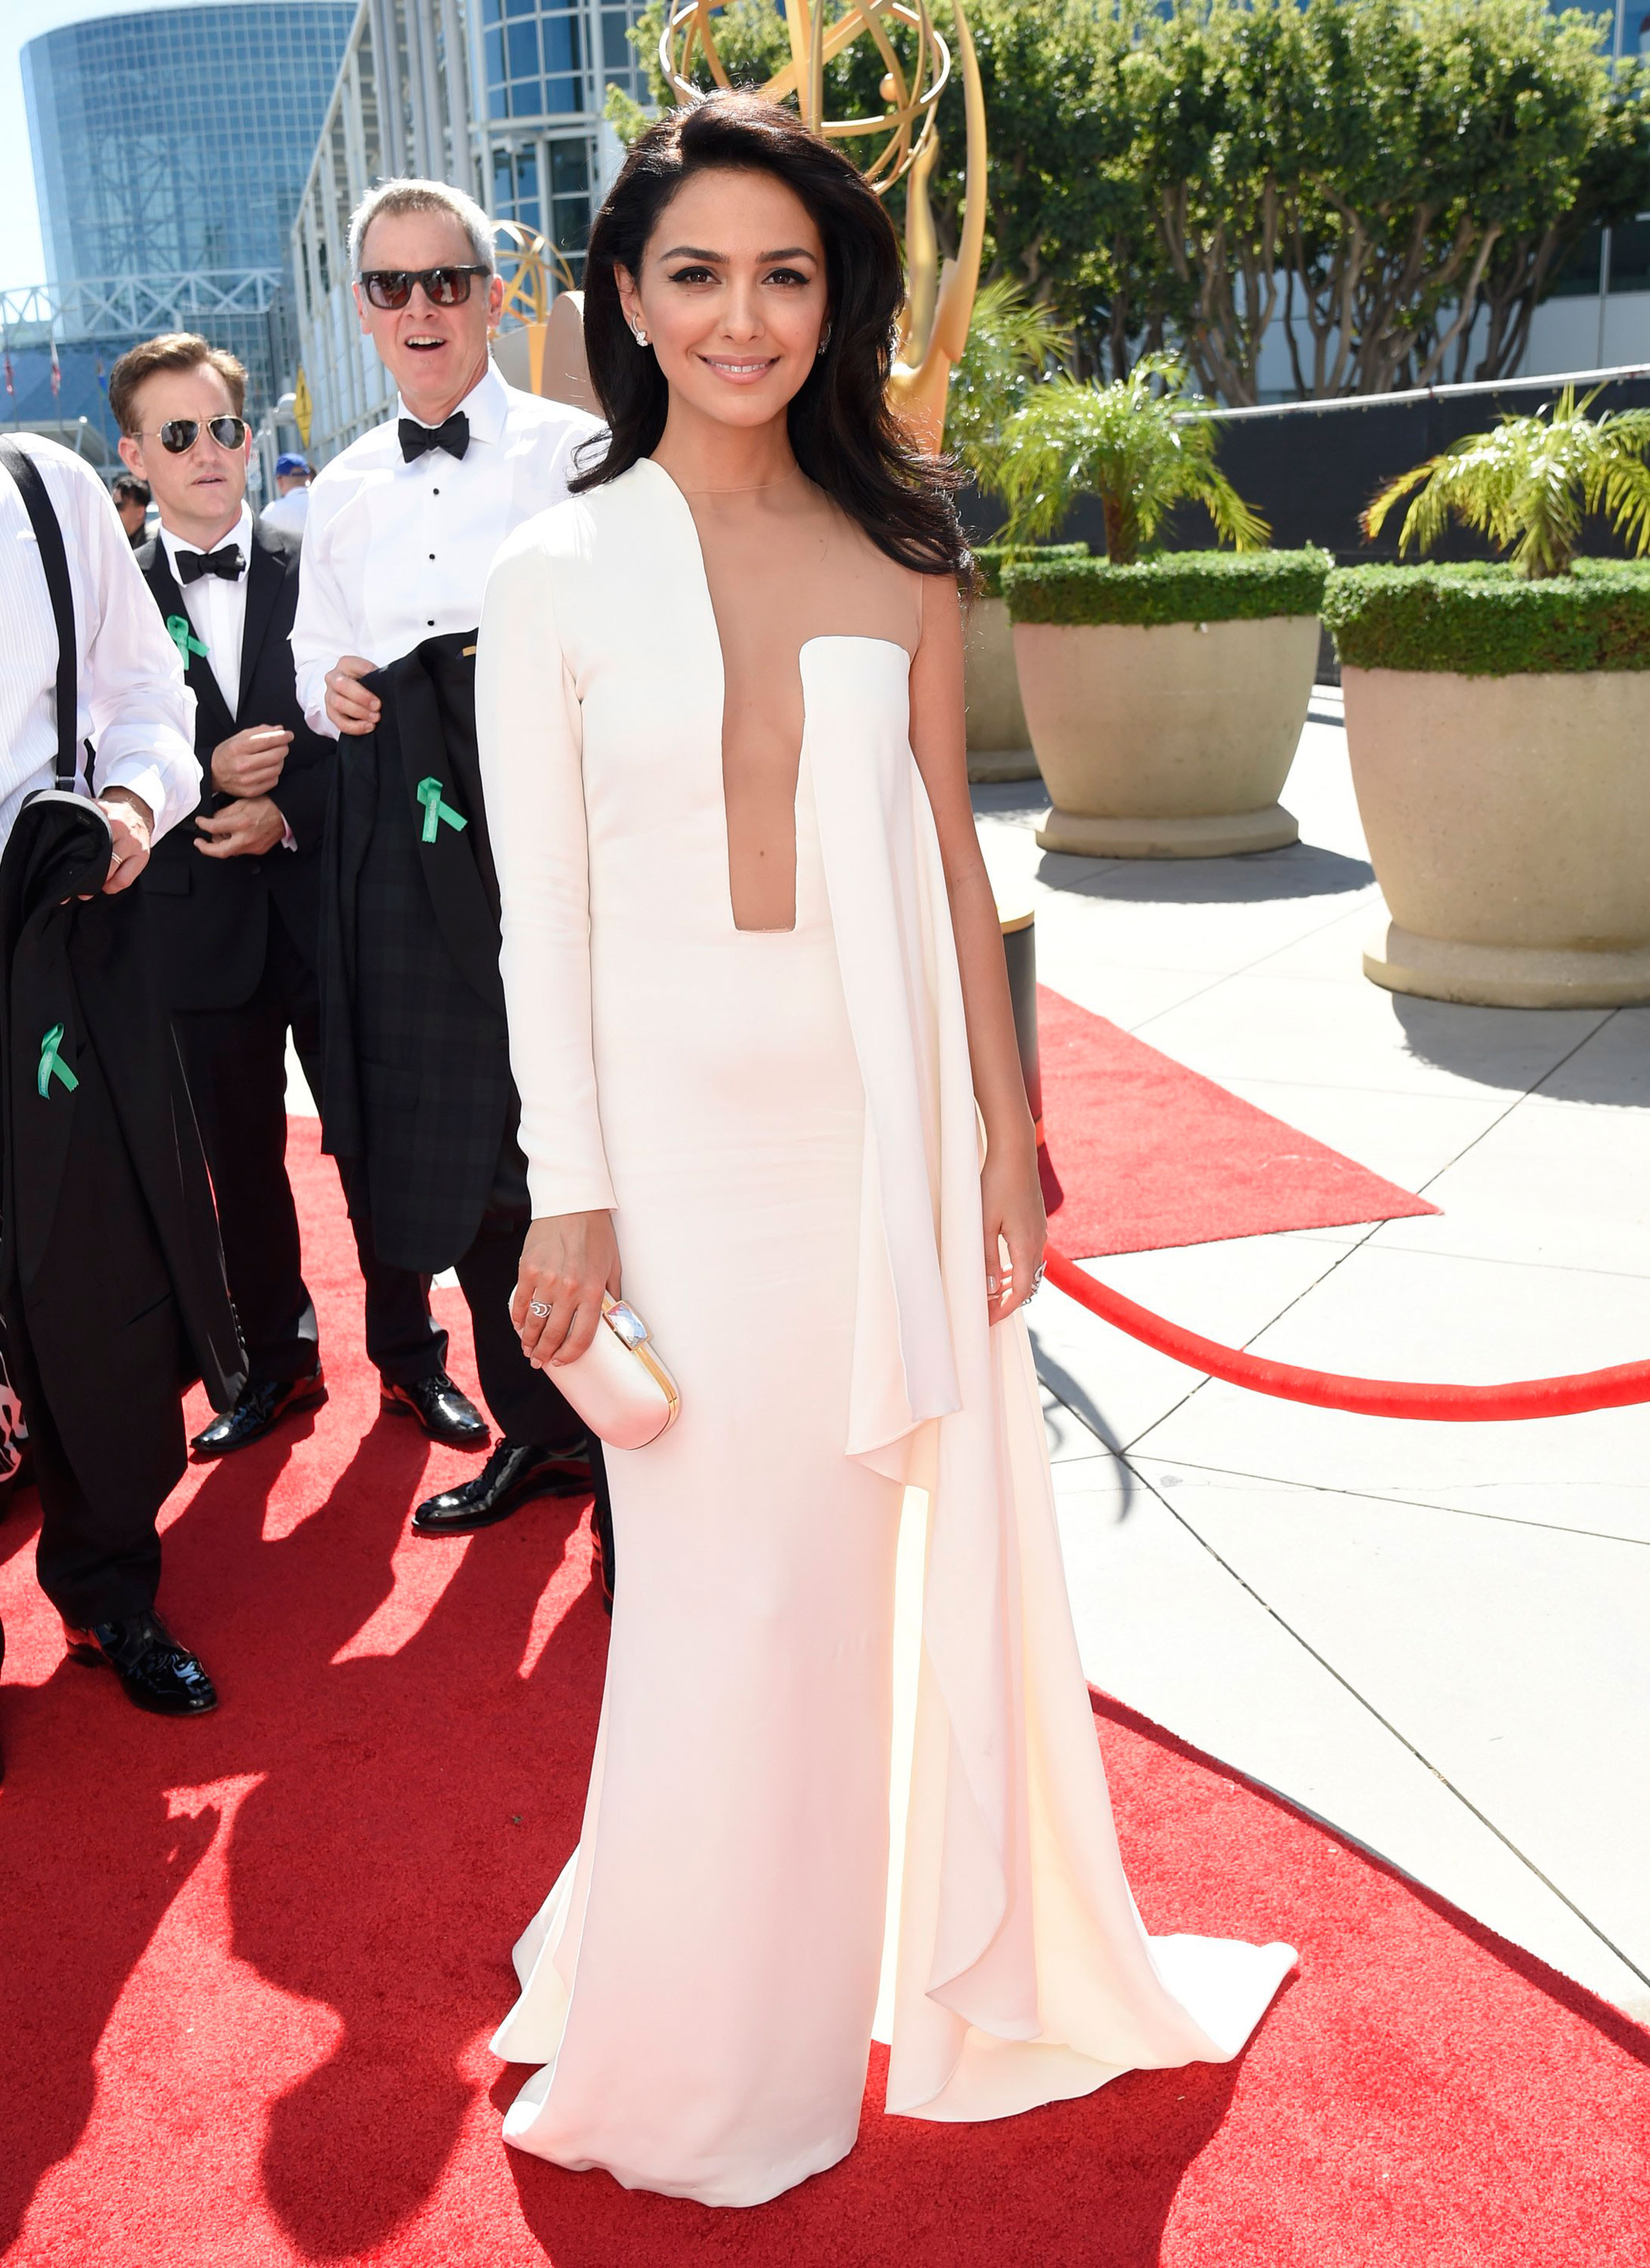 Nazanin Boniadi at the 67th Emmy Award on Sept. 20, 2015 in Los Angeles.